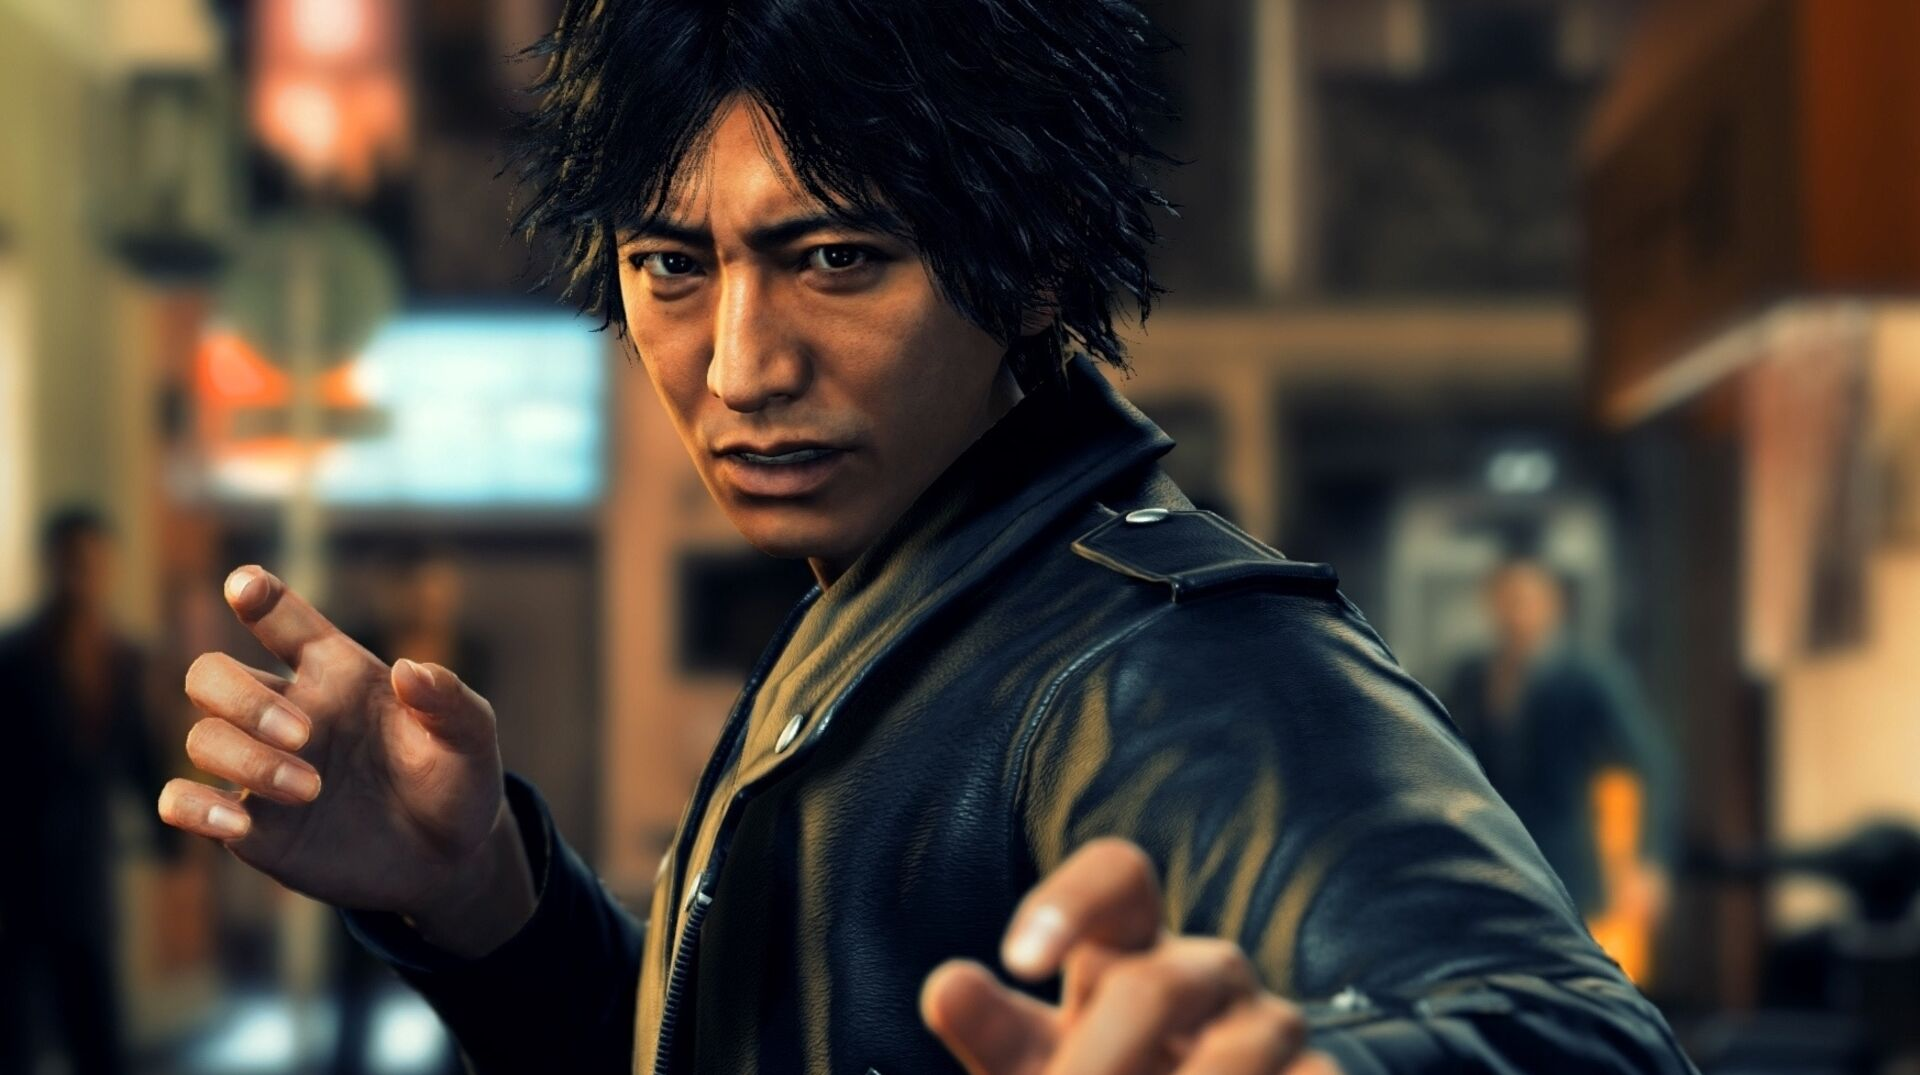 Judgment review - slick sleuthing spin-off that doesn't